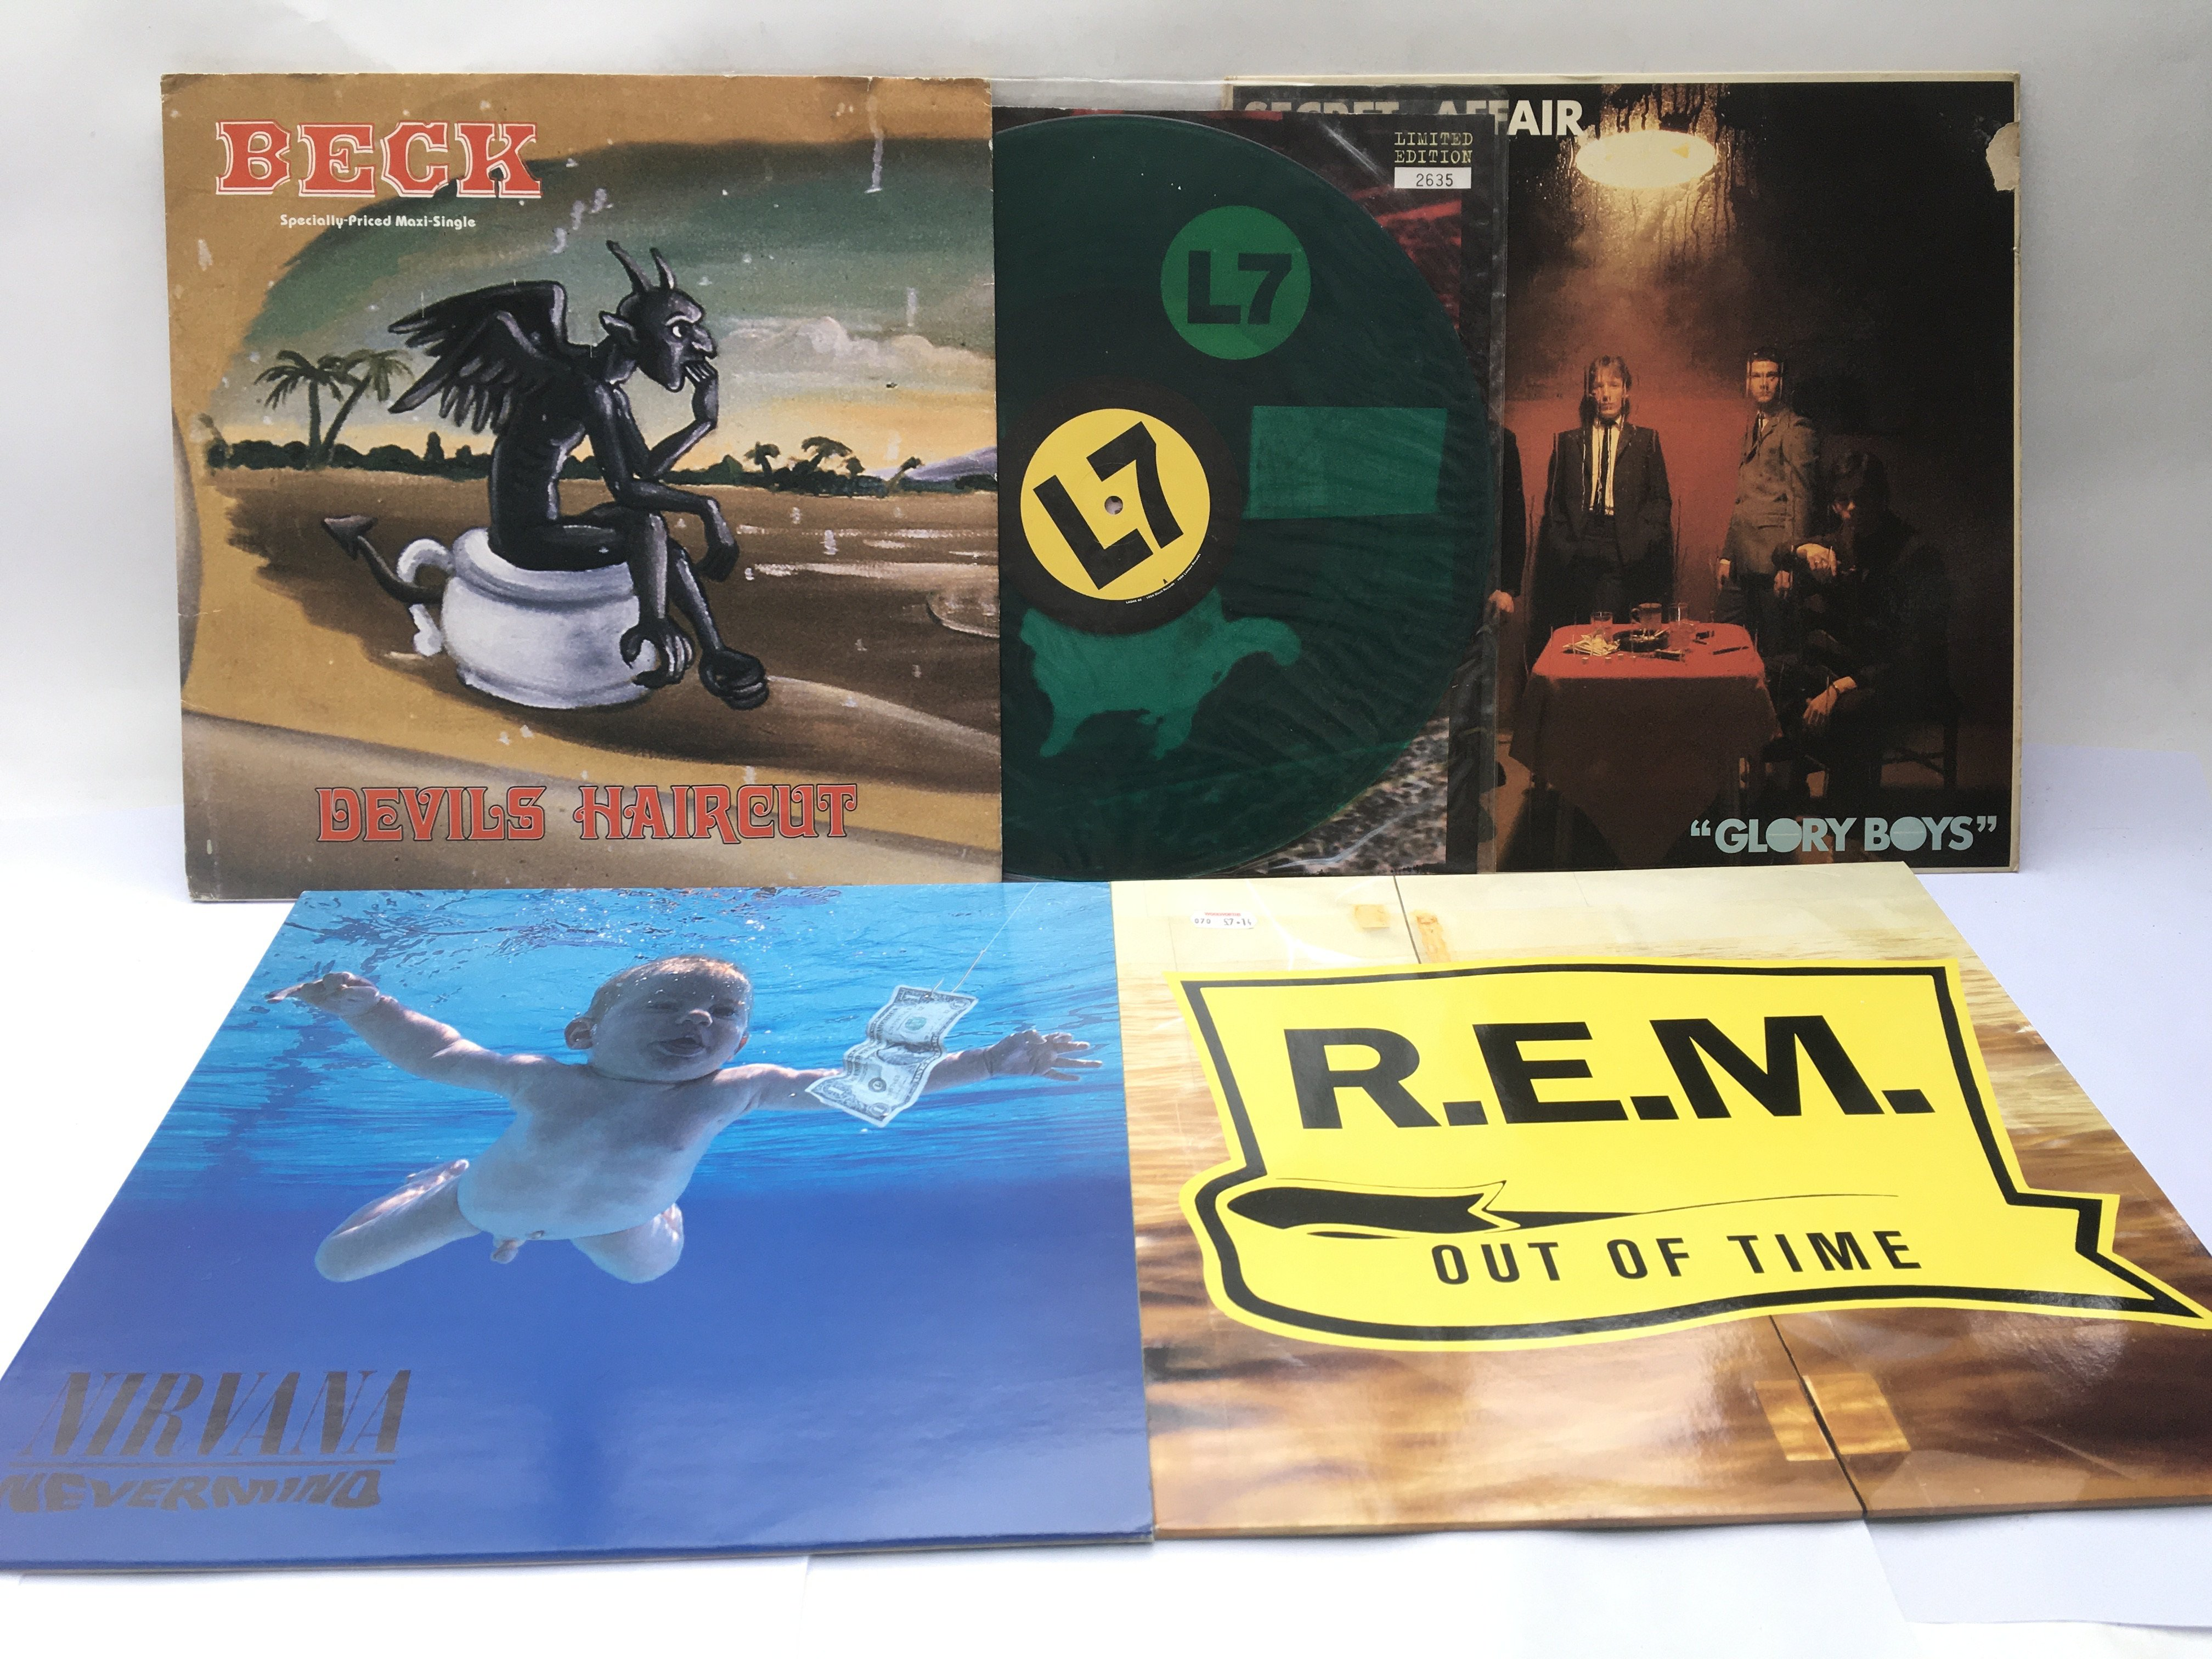 A small collection of indie alternative LPs, 12inc